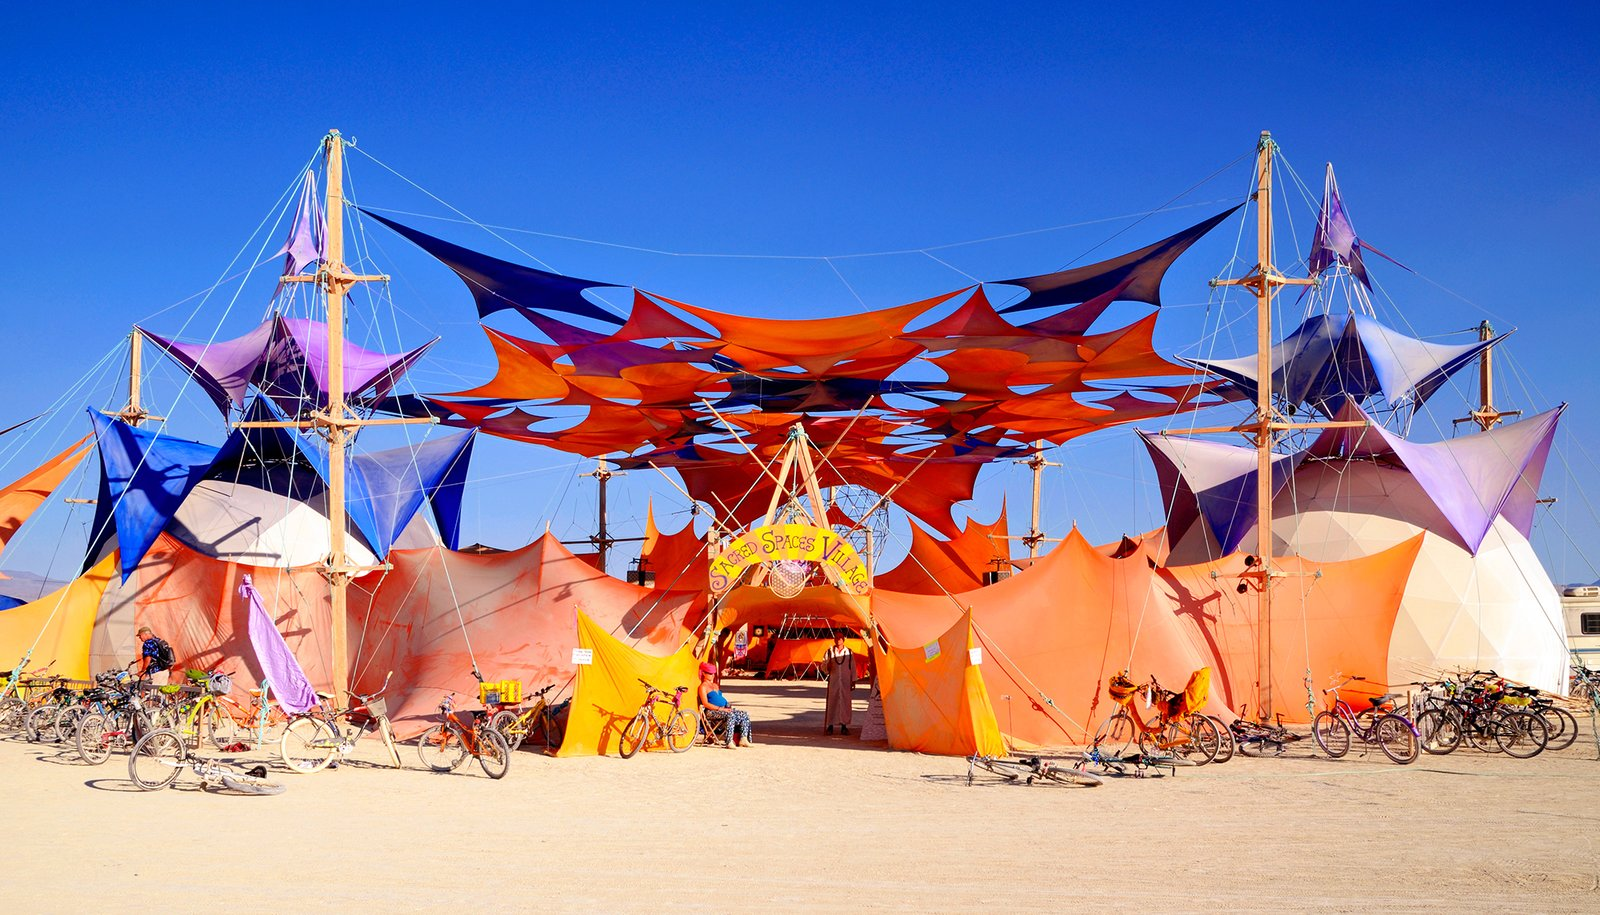 Exterior and Tent Building Type Sacred Spaces Village  Photos from 16 Otherworldly Photos of Burning Man Architecture